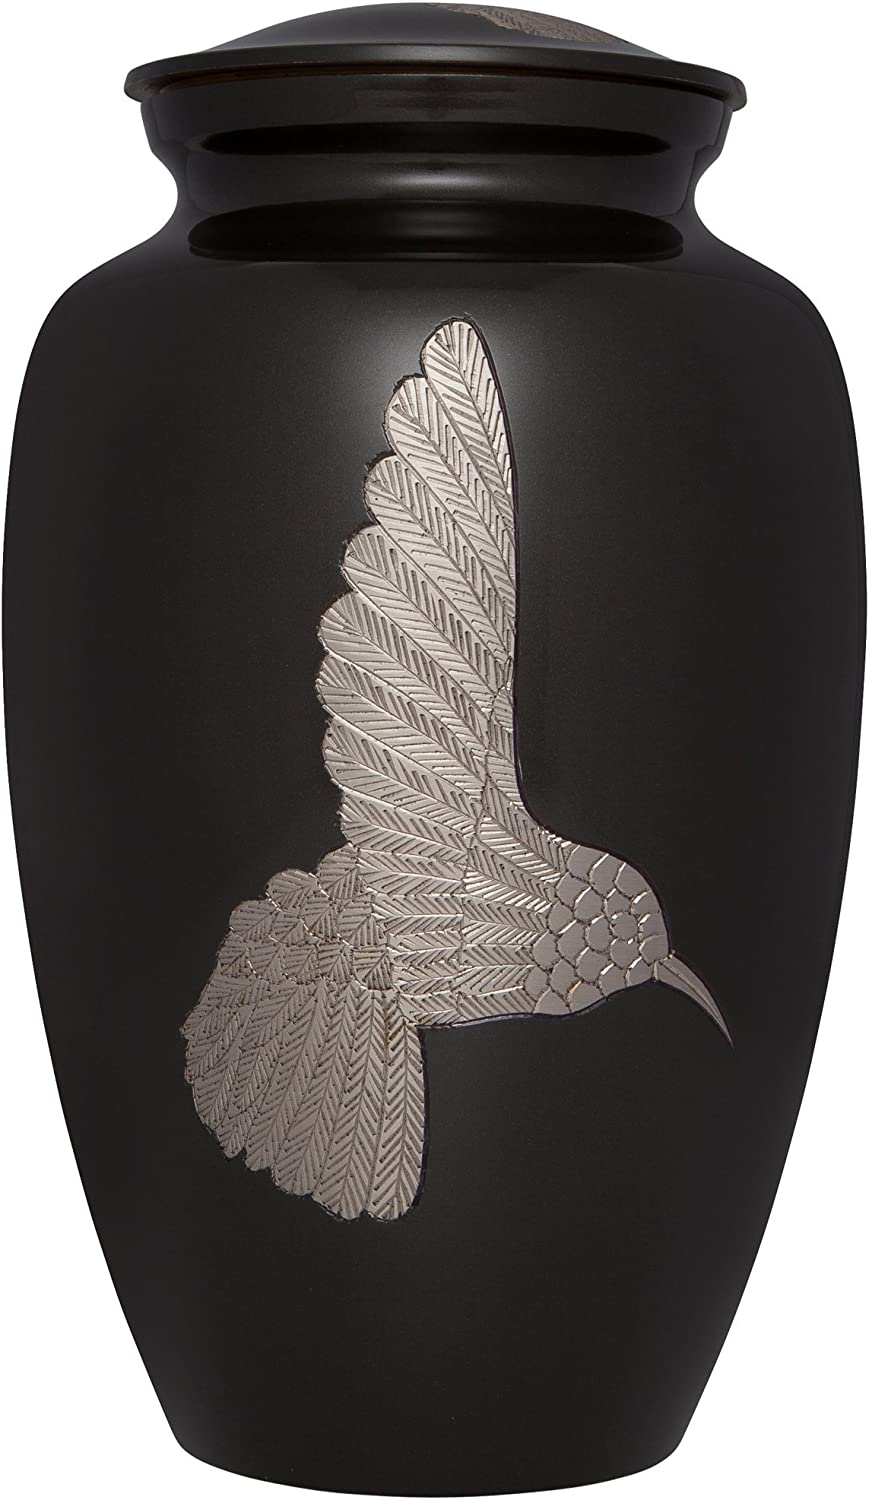 Charcoal Hummingbird Funeral Max 44% OFF Clearance SALE! Limited time! Urn by Crematio - Memorials Liliane